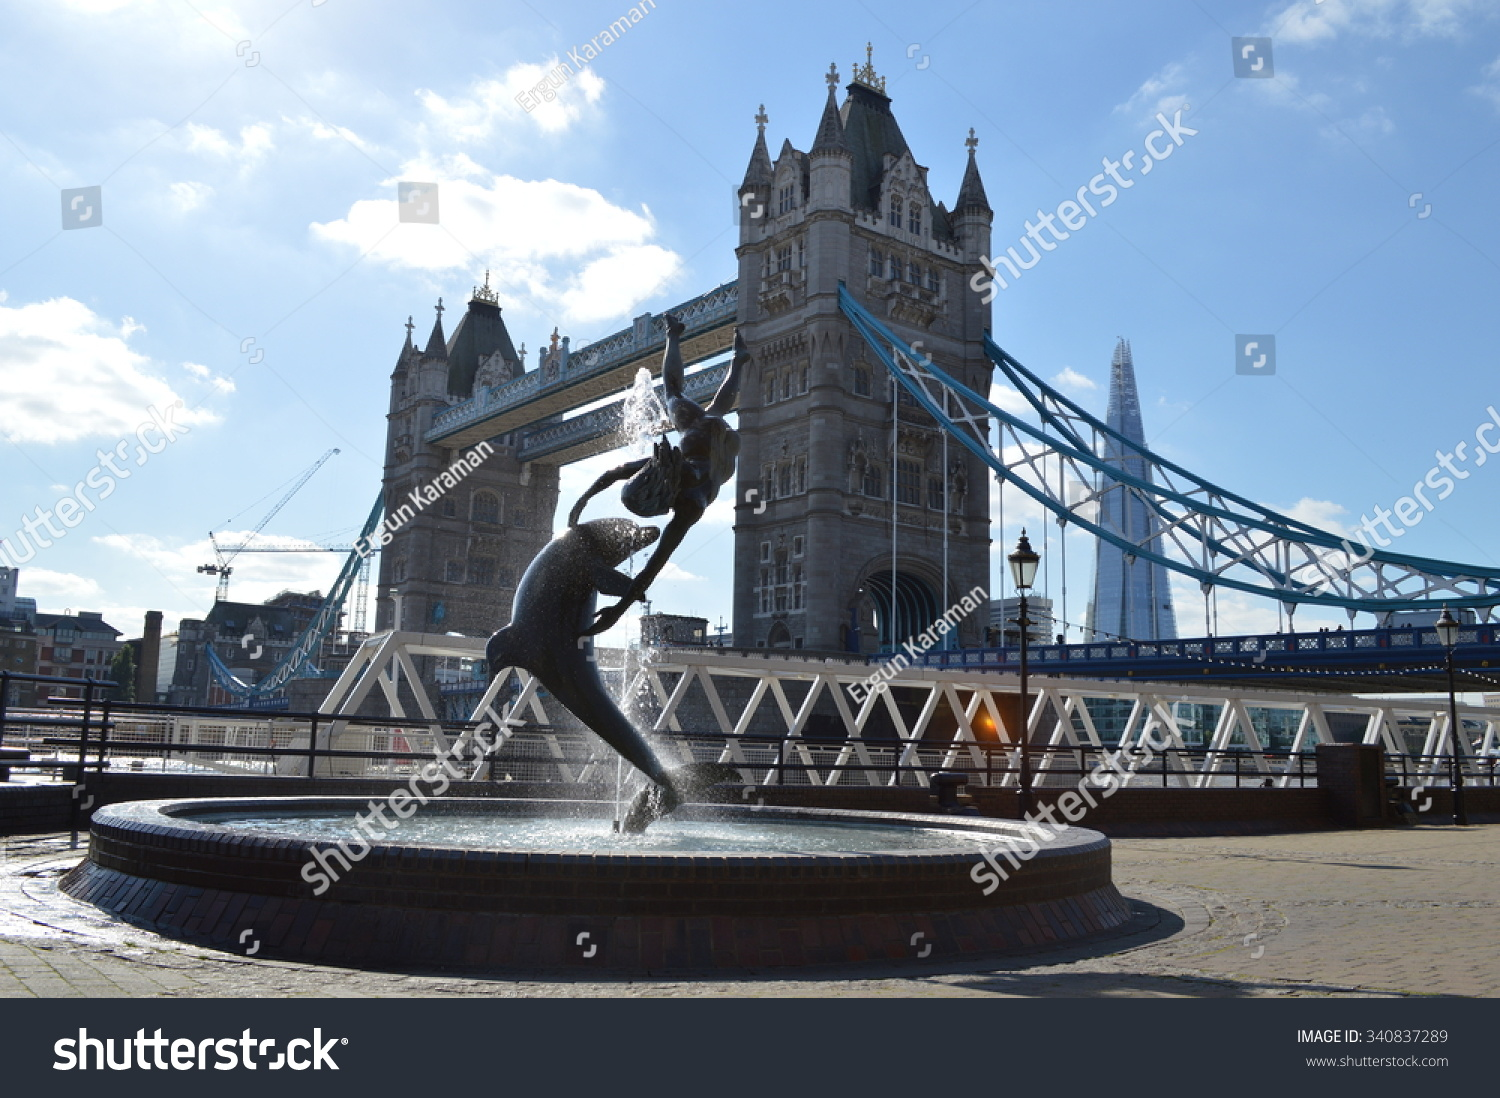 statue with London Tower Bridge in the background